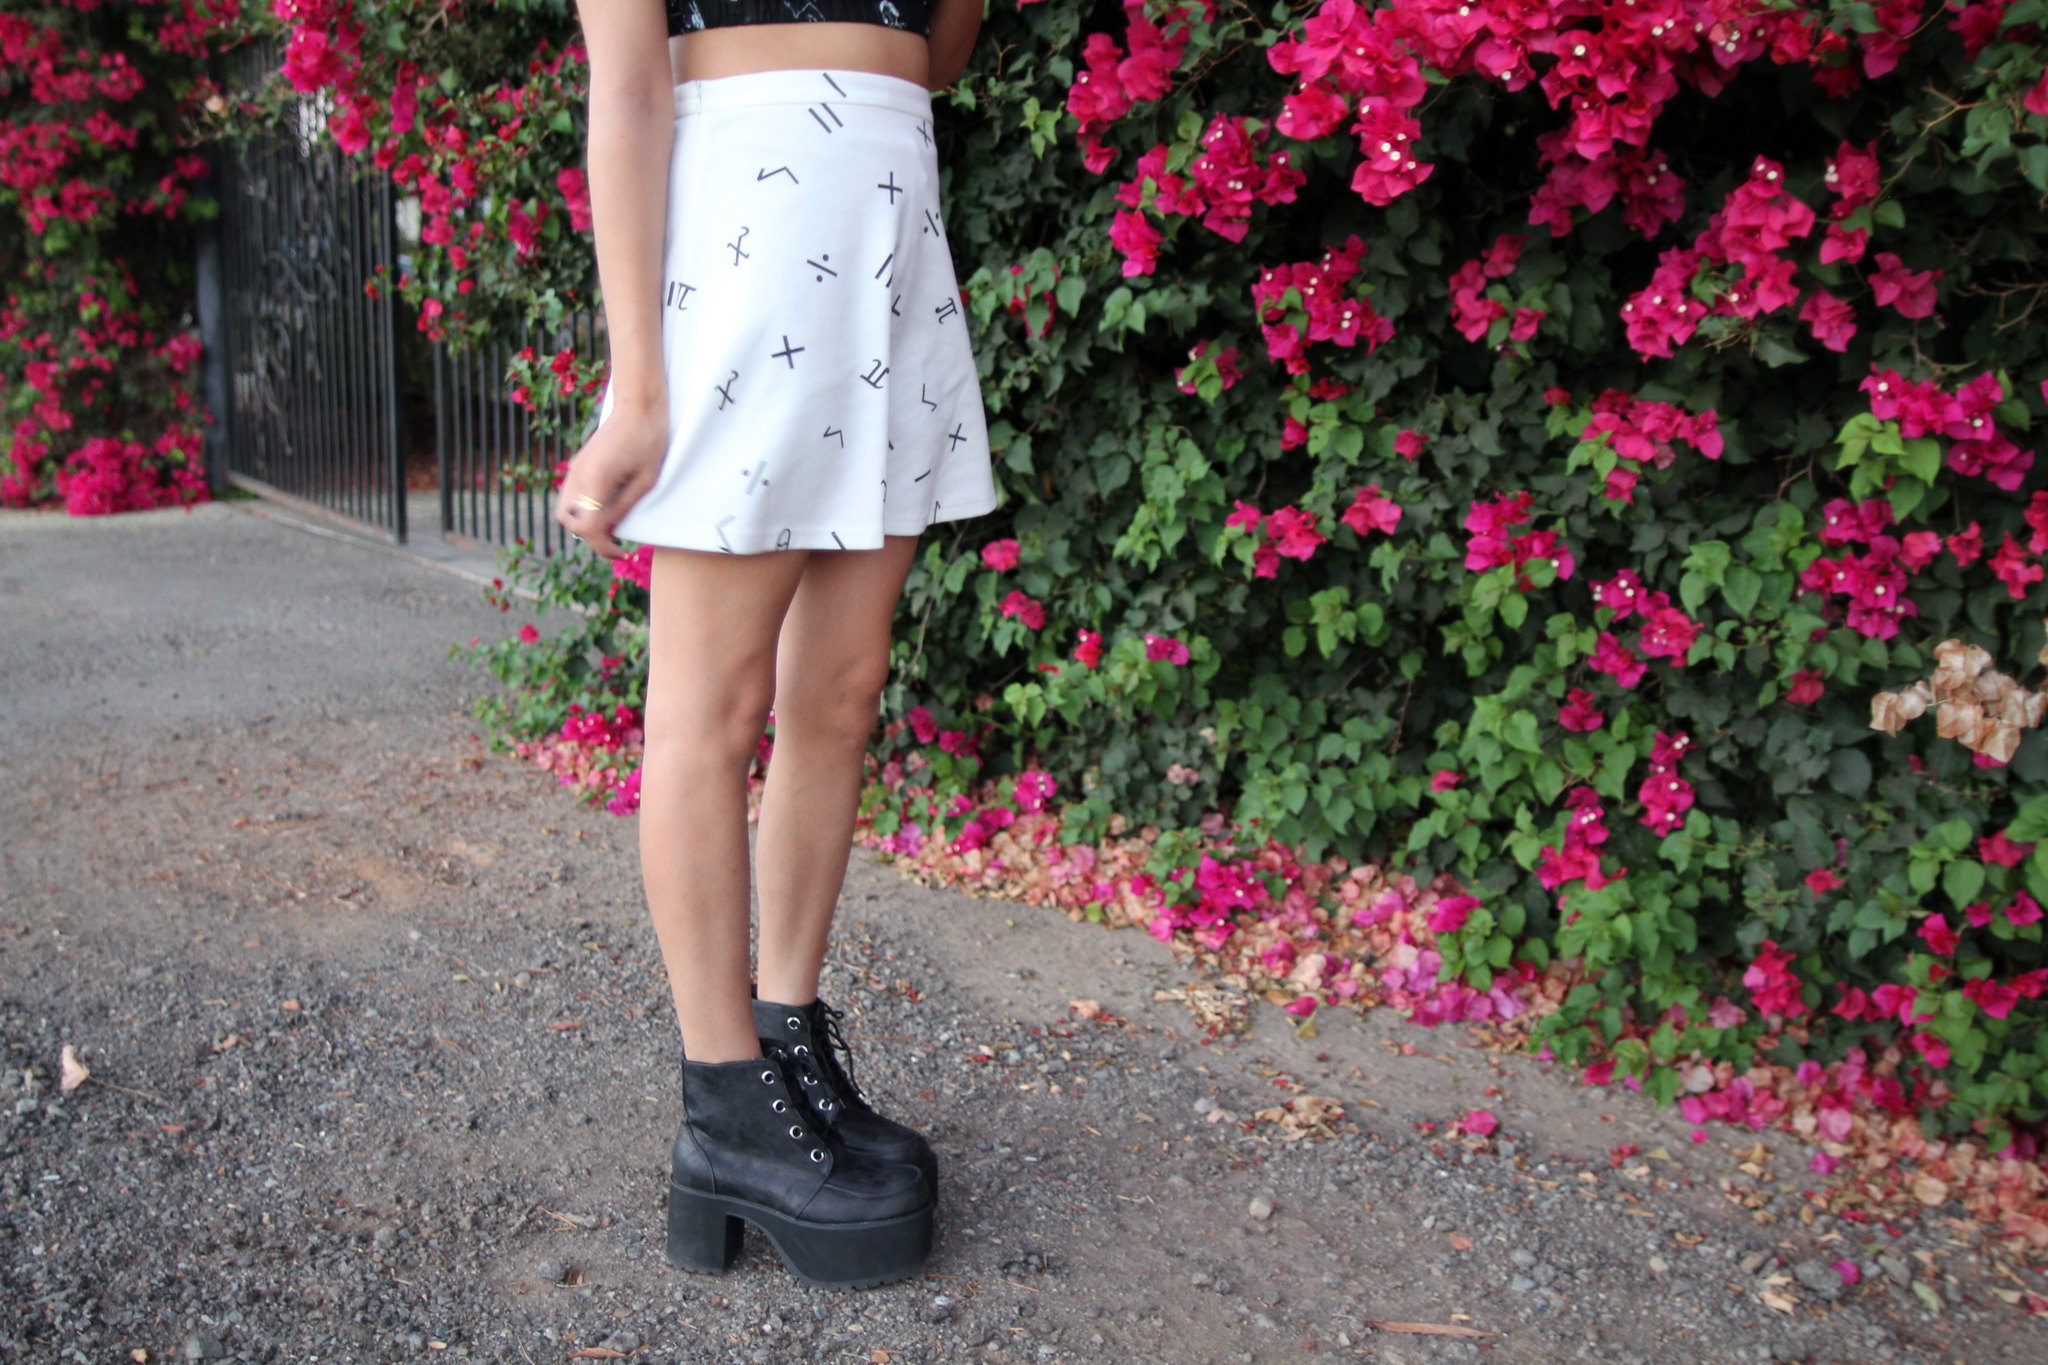 Punkiss Art Scribble Top, TUK platform Boots, Can U Not Algebraic Circle Skirt